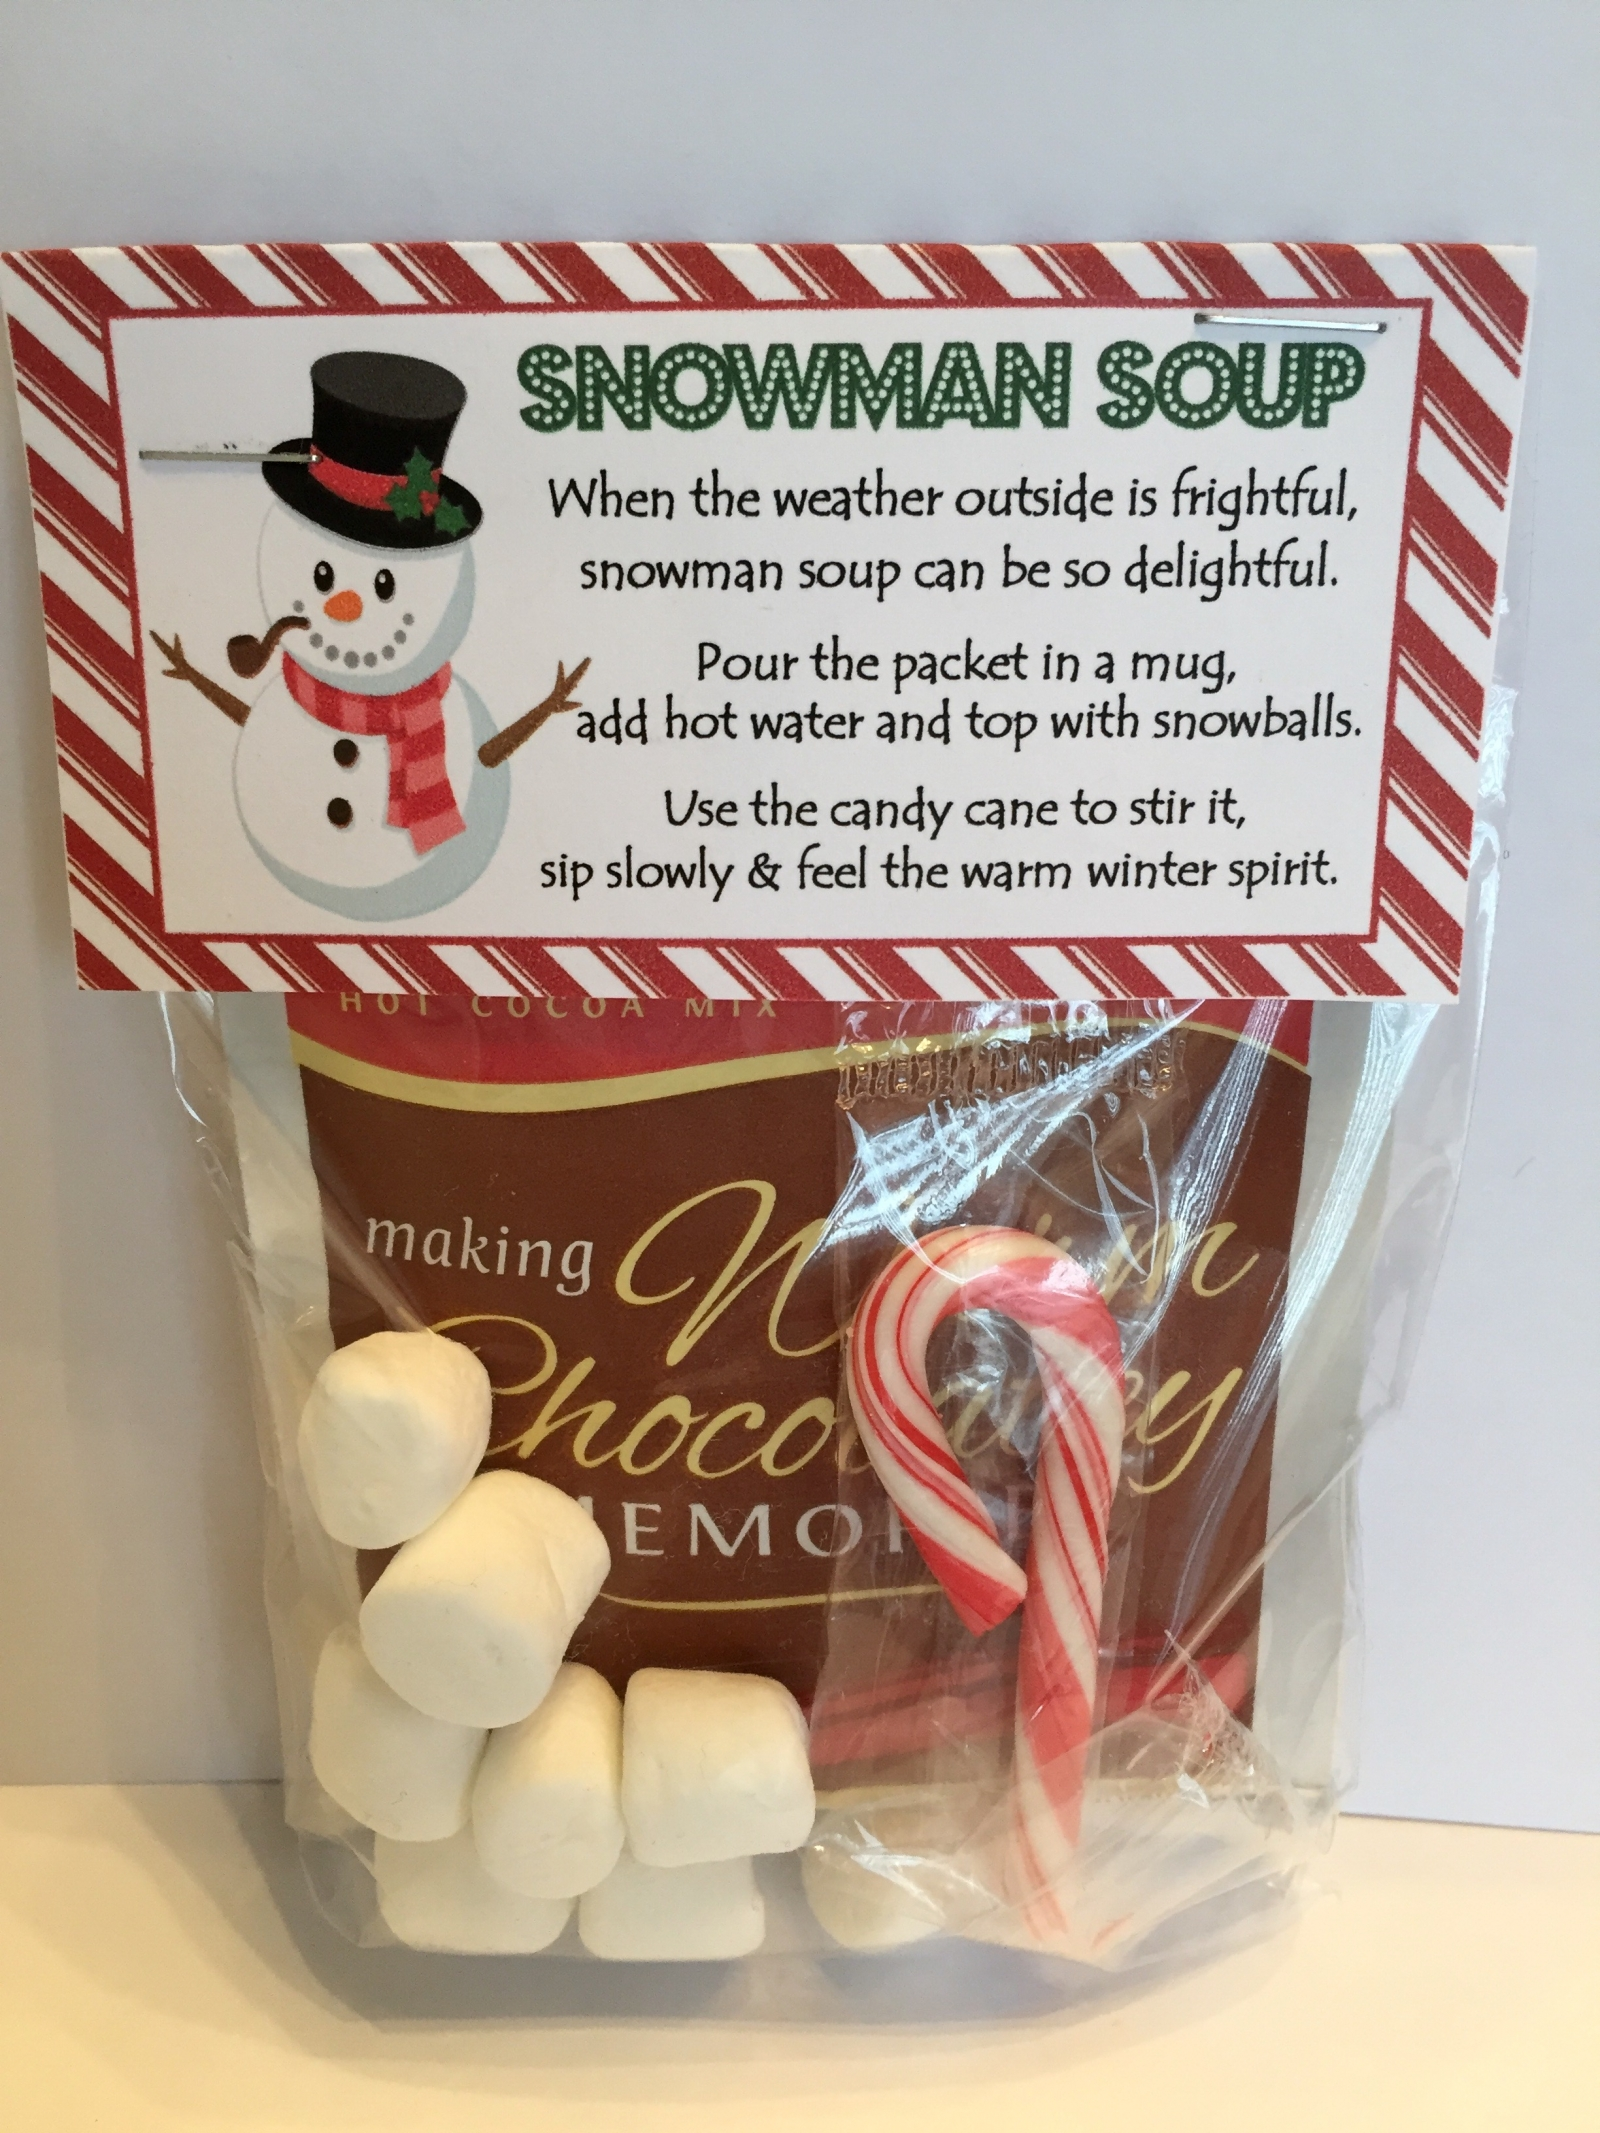 photo about Snowman Soup Free Printable Bag Toppers referred to as Snowman Soup - Deal with Bag Topper - Electronic Document - Oneself print!